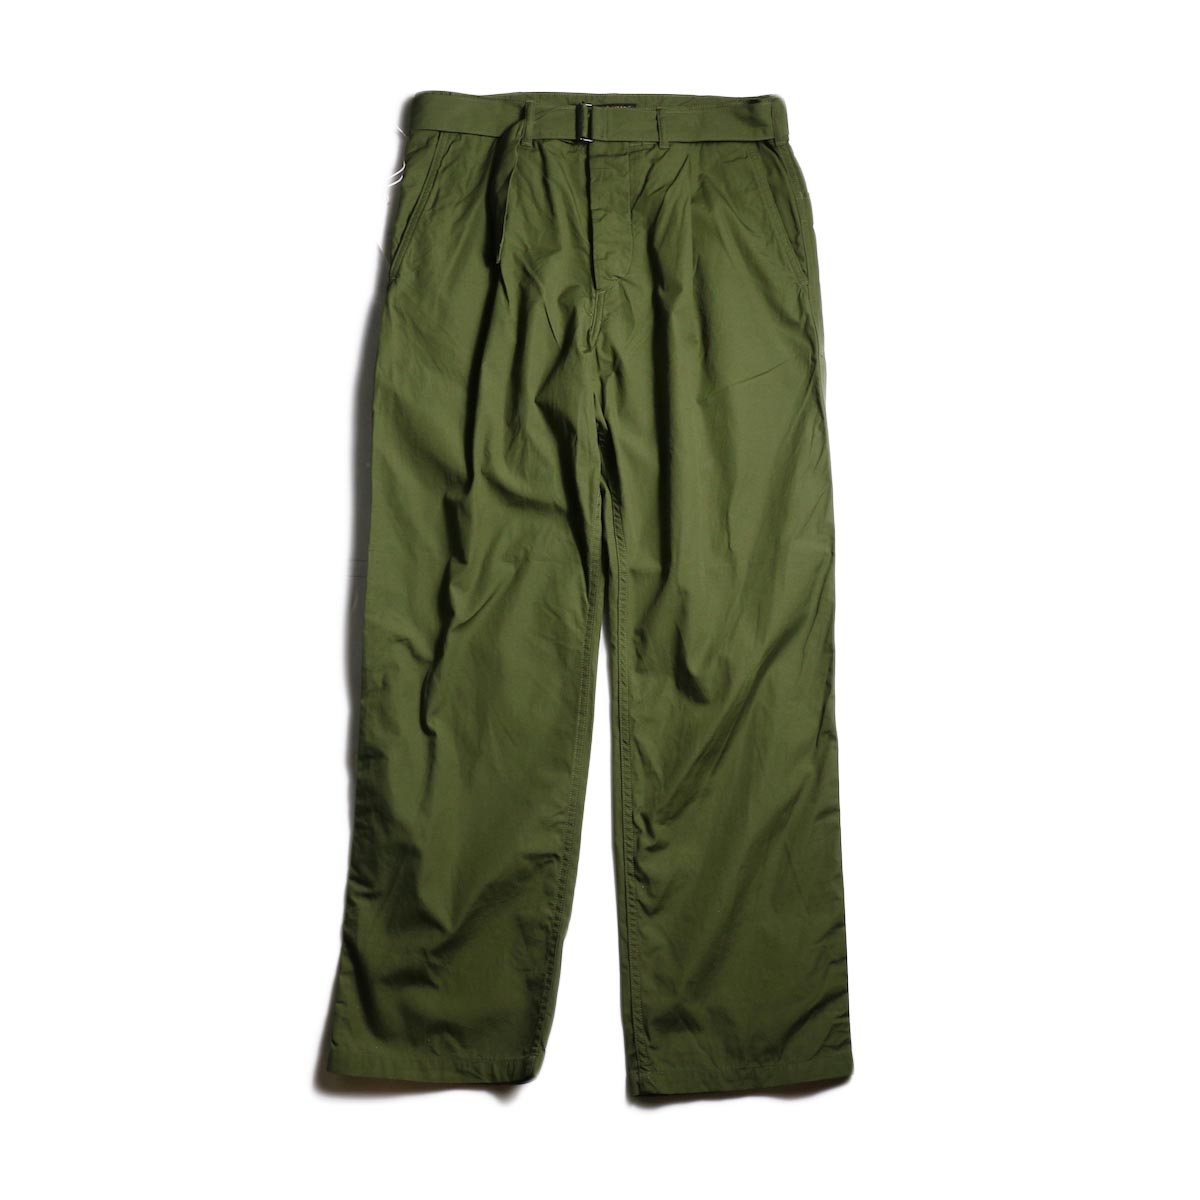 A VONTADE / Mil. Cookman Trousers w/Belt (Olive)